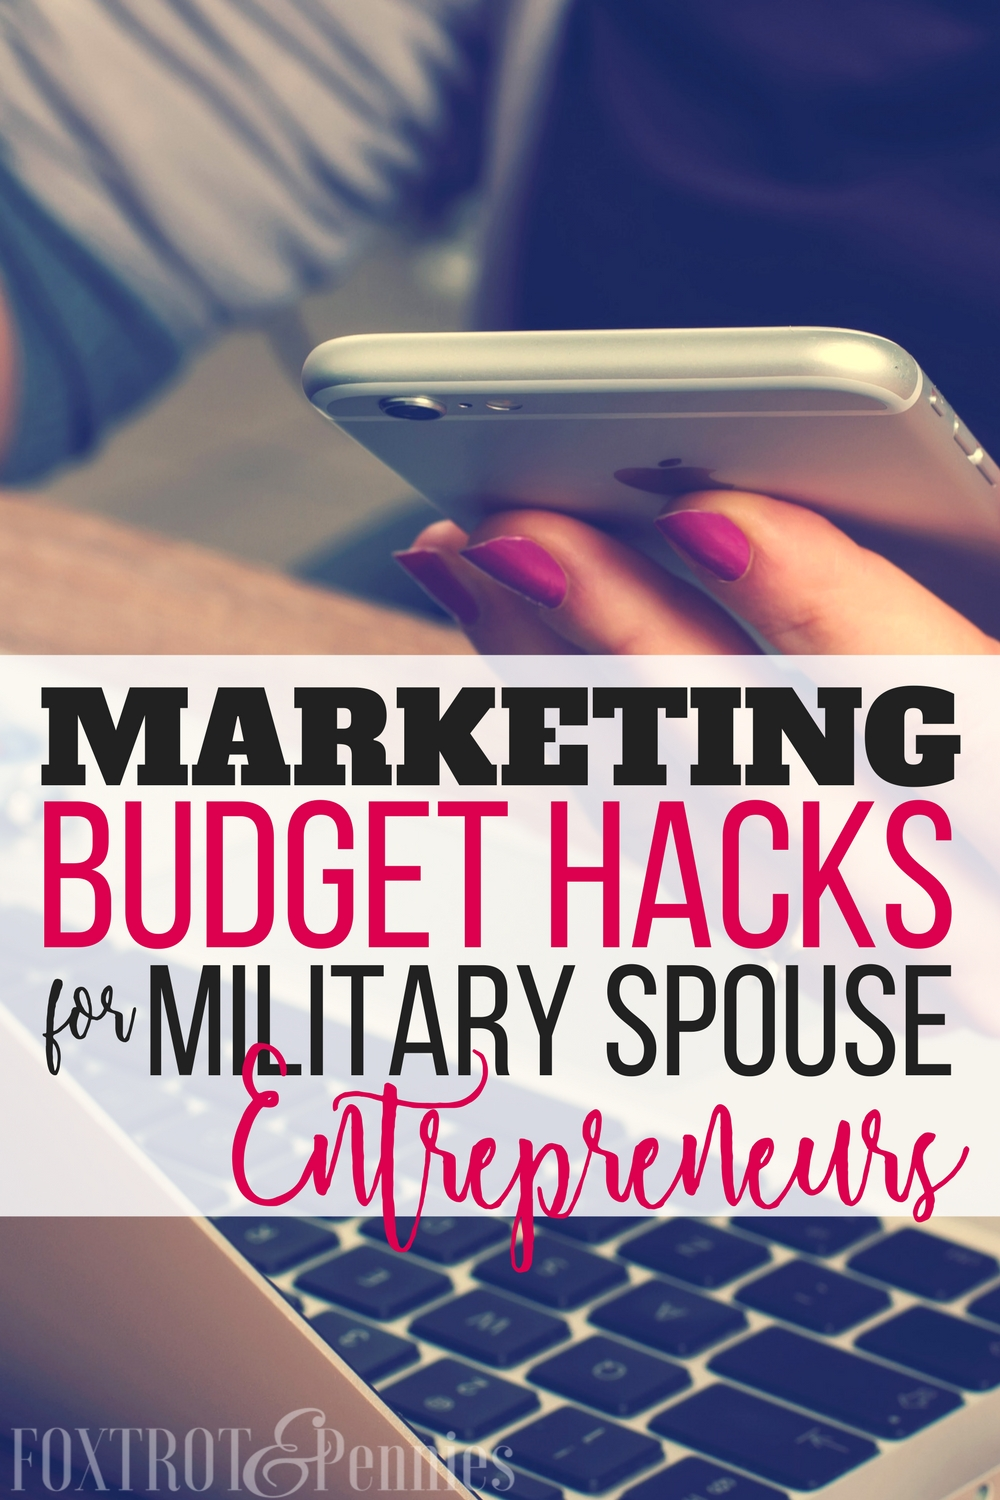 Finally! Effective marketing resources that won't drain the bank account. Being a military spouse entrepreneur, I'm always trying to find the best ways to market and grow my business but at the same time, I want to be smart about my investments. These hacks not only work but are easy on the budget.